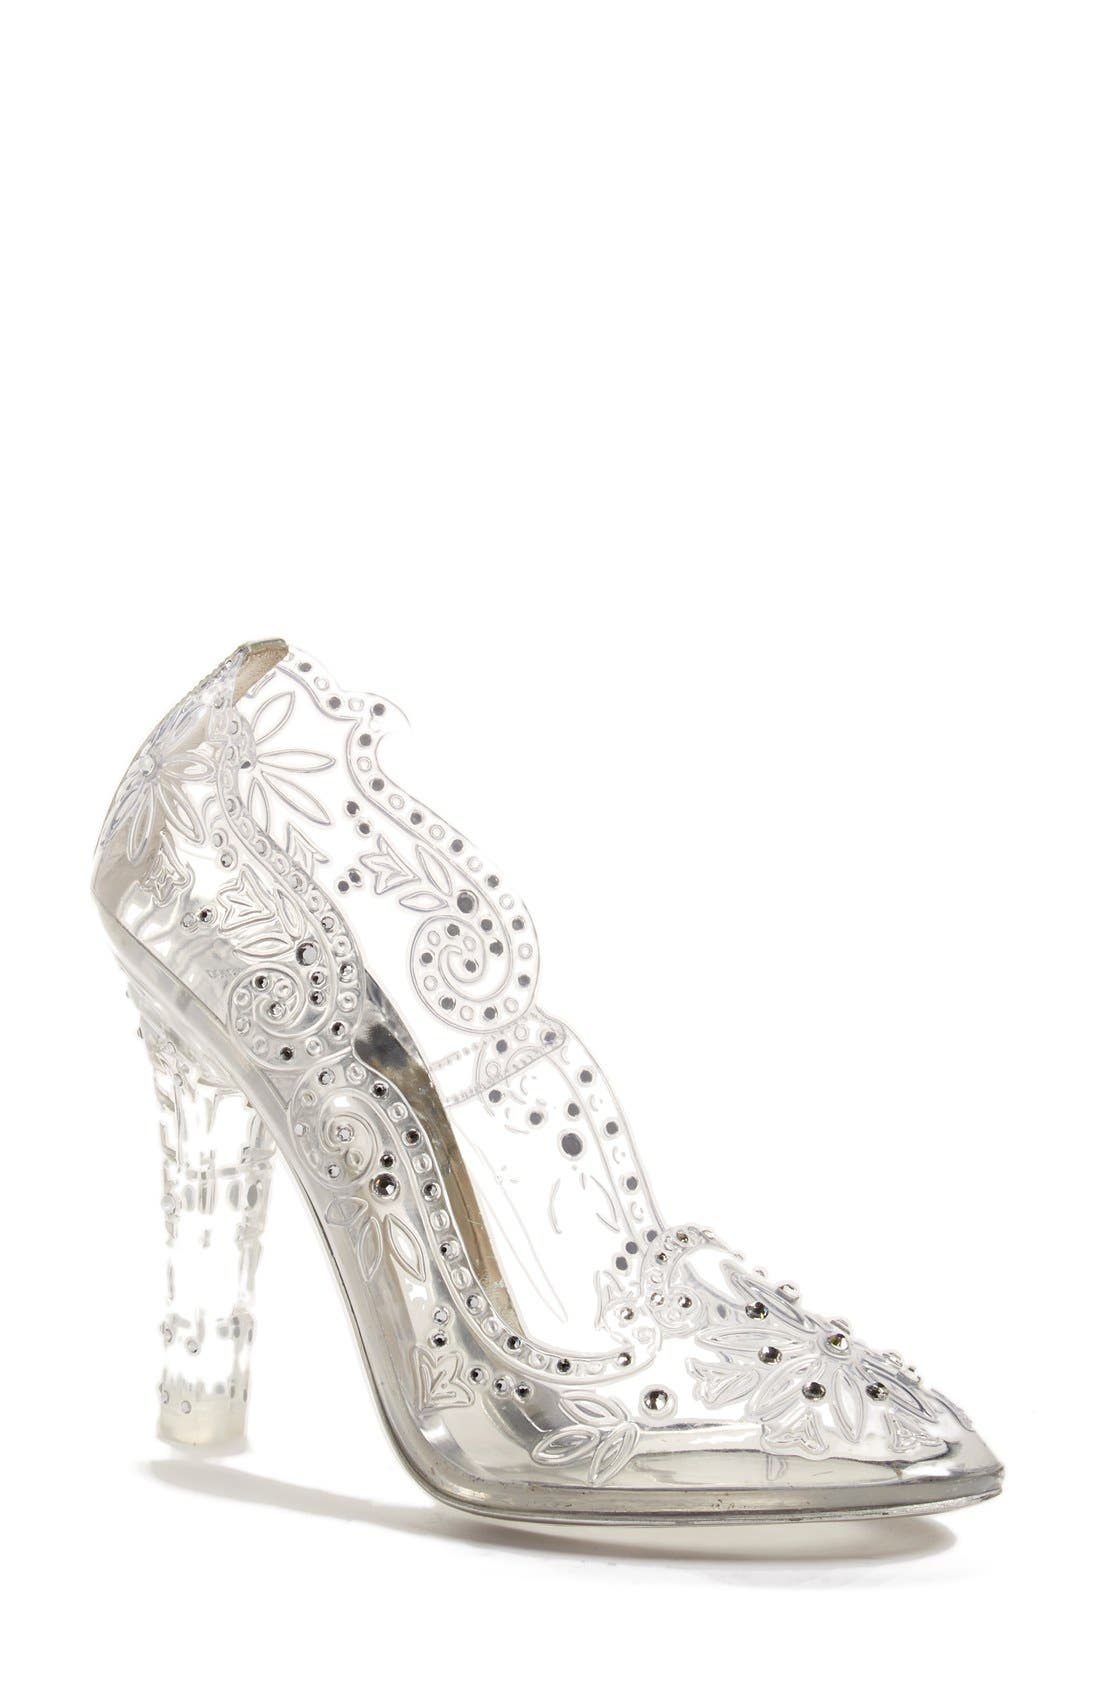 Main Image - Dolce&Gabbana 'Glass Slipper' Pump (Women)